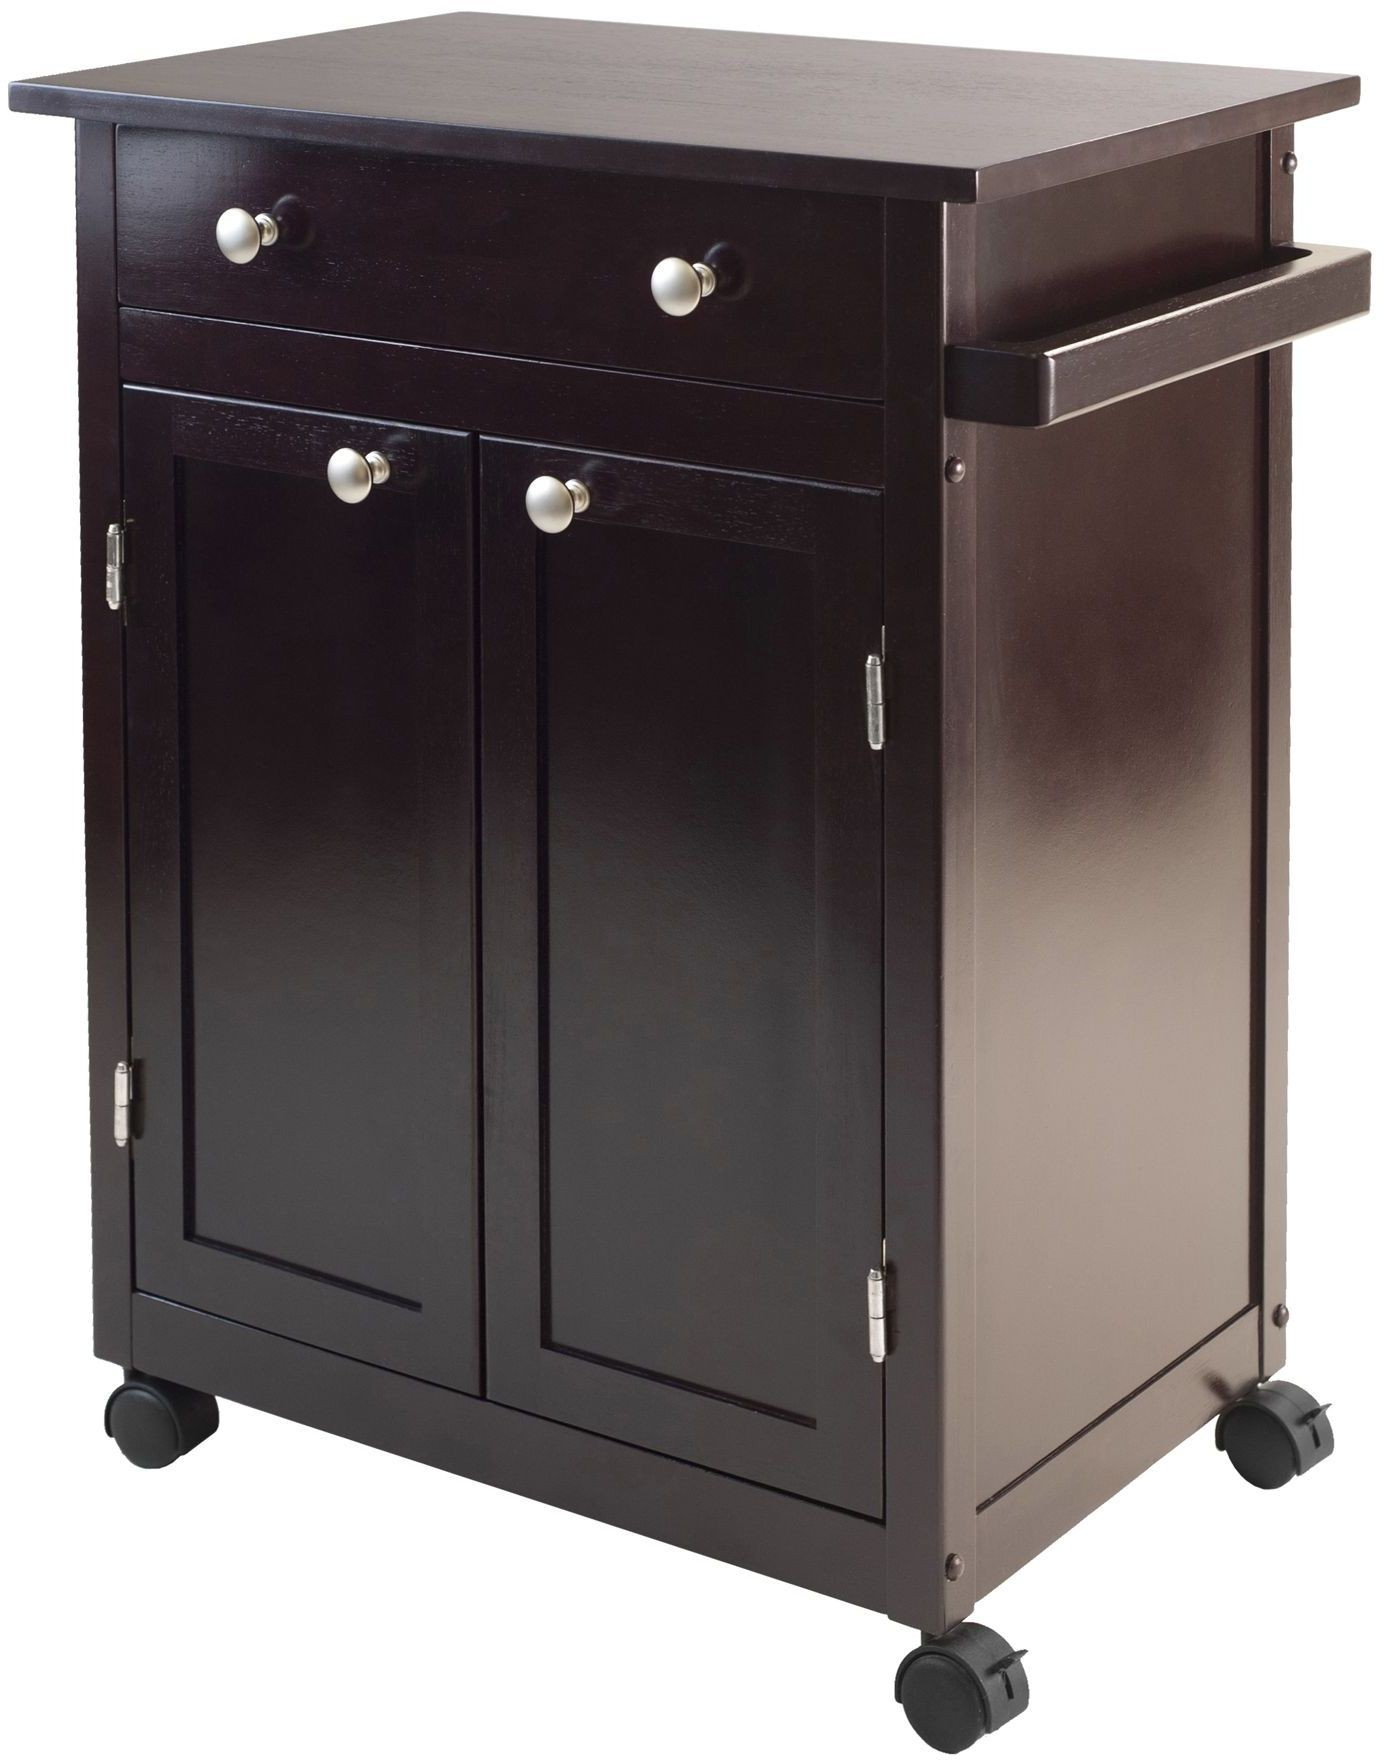 kitchen coffee cart rubbed bronze faucet savannah espresso from winsomewood coleman